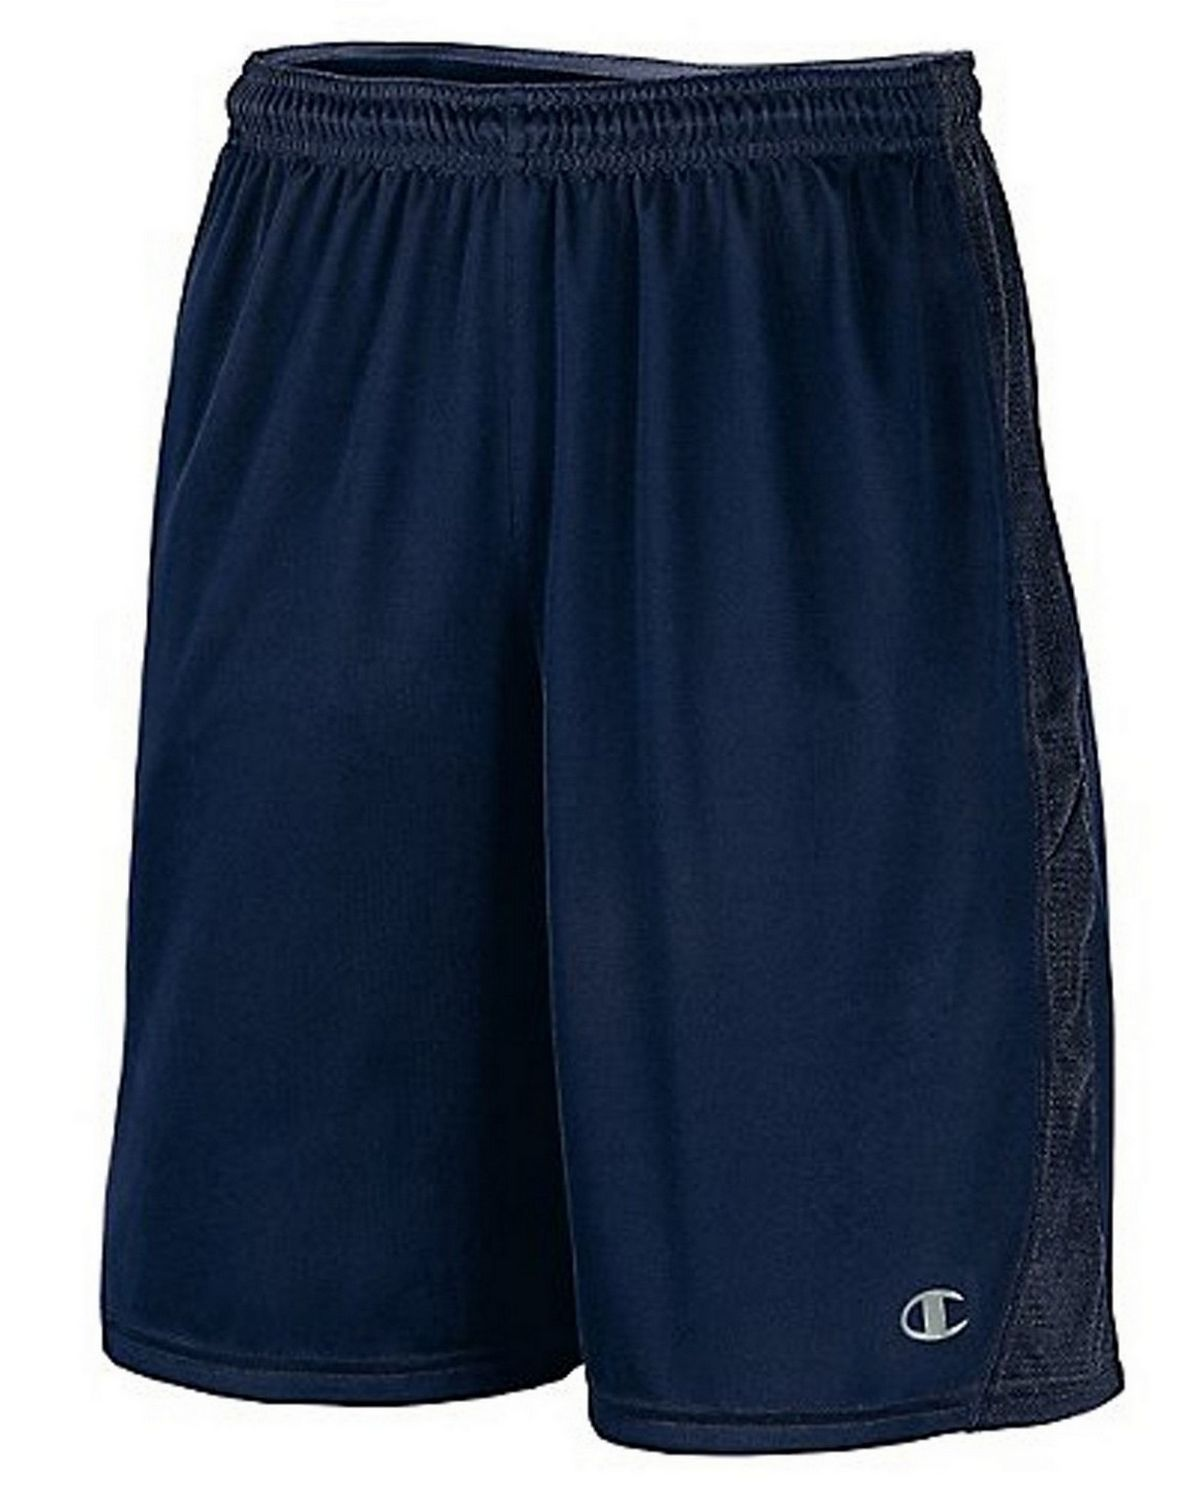 Champion 86703 Vapor PowerTrain Knit Shorts - Navy - S 86703